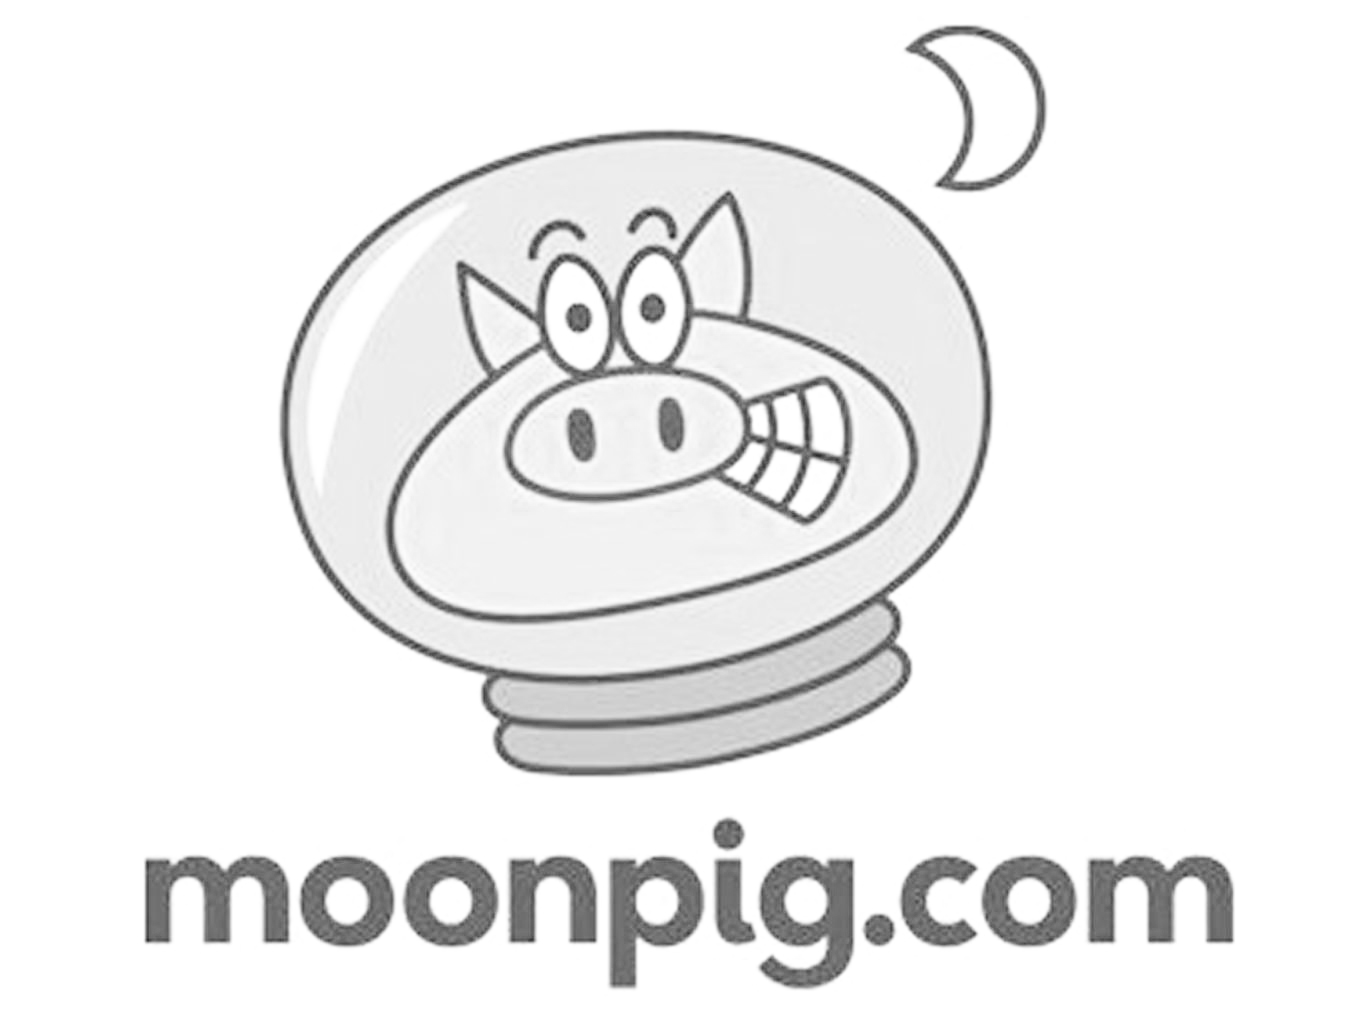 Moonpig usa delivery first time dads order sunny meadow handtie moonpig spiritdancerdesigns Choice Image